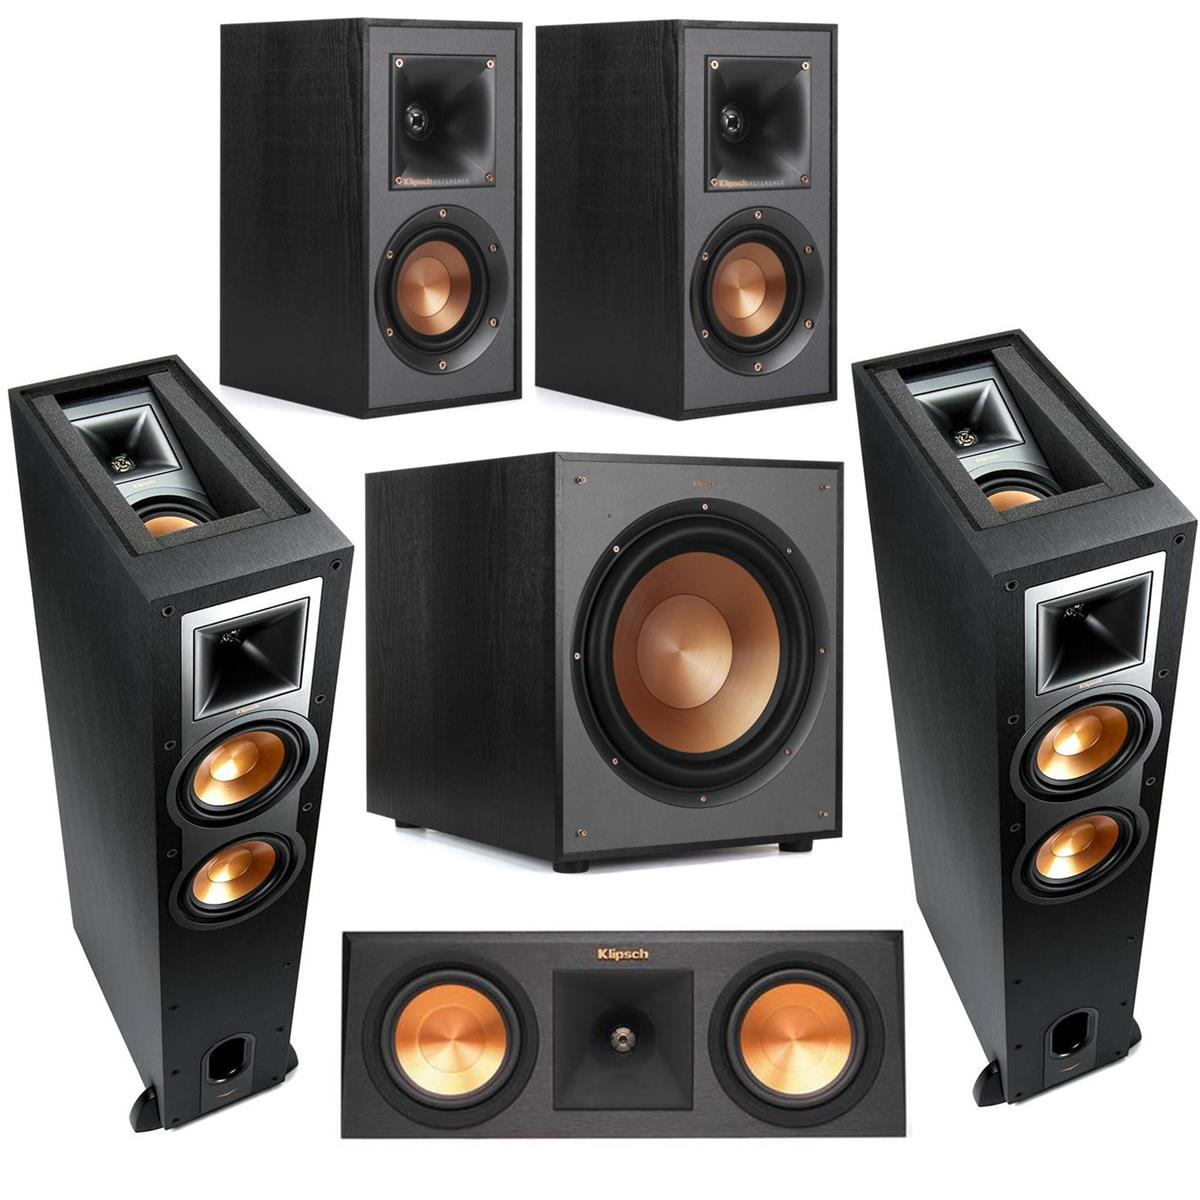 Klipsch 2 Pack R-26FA Dolby Atmos Speaker - Bundle With Klipsch Premiere RP-250C 2-Way C enter Speaker Ebony, Klipsch R-41M Bookshelf Home Speakers (Pair), Klipsch R-120 SW Subwoofer